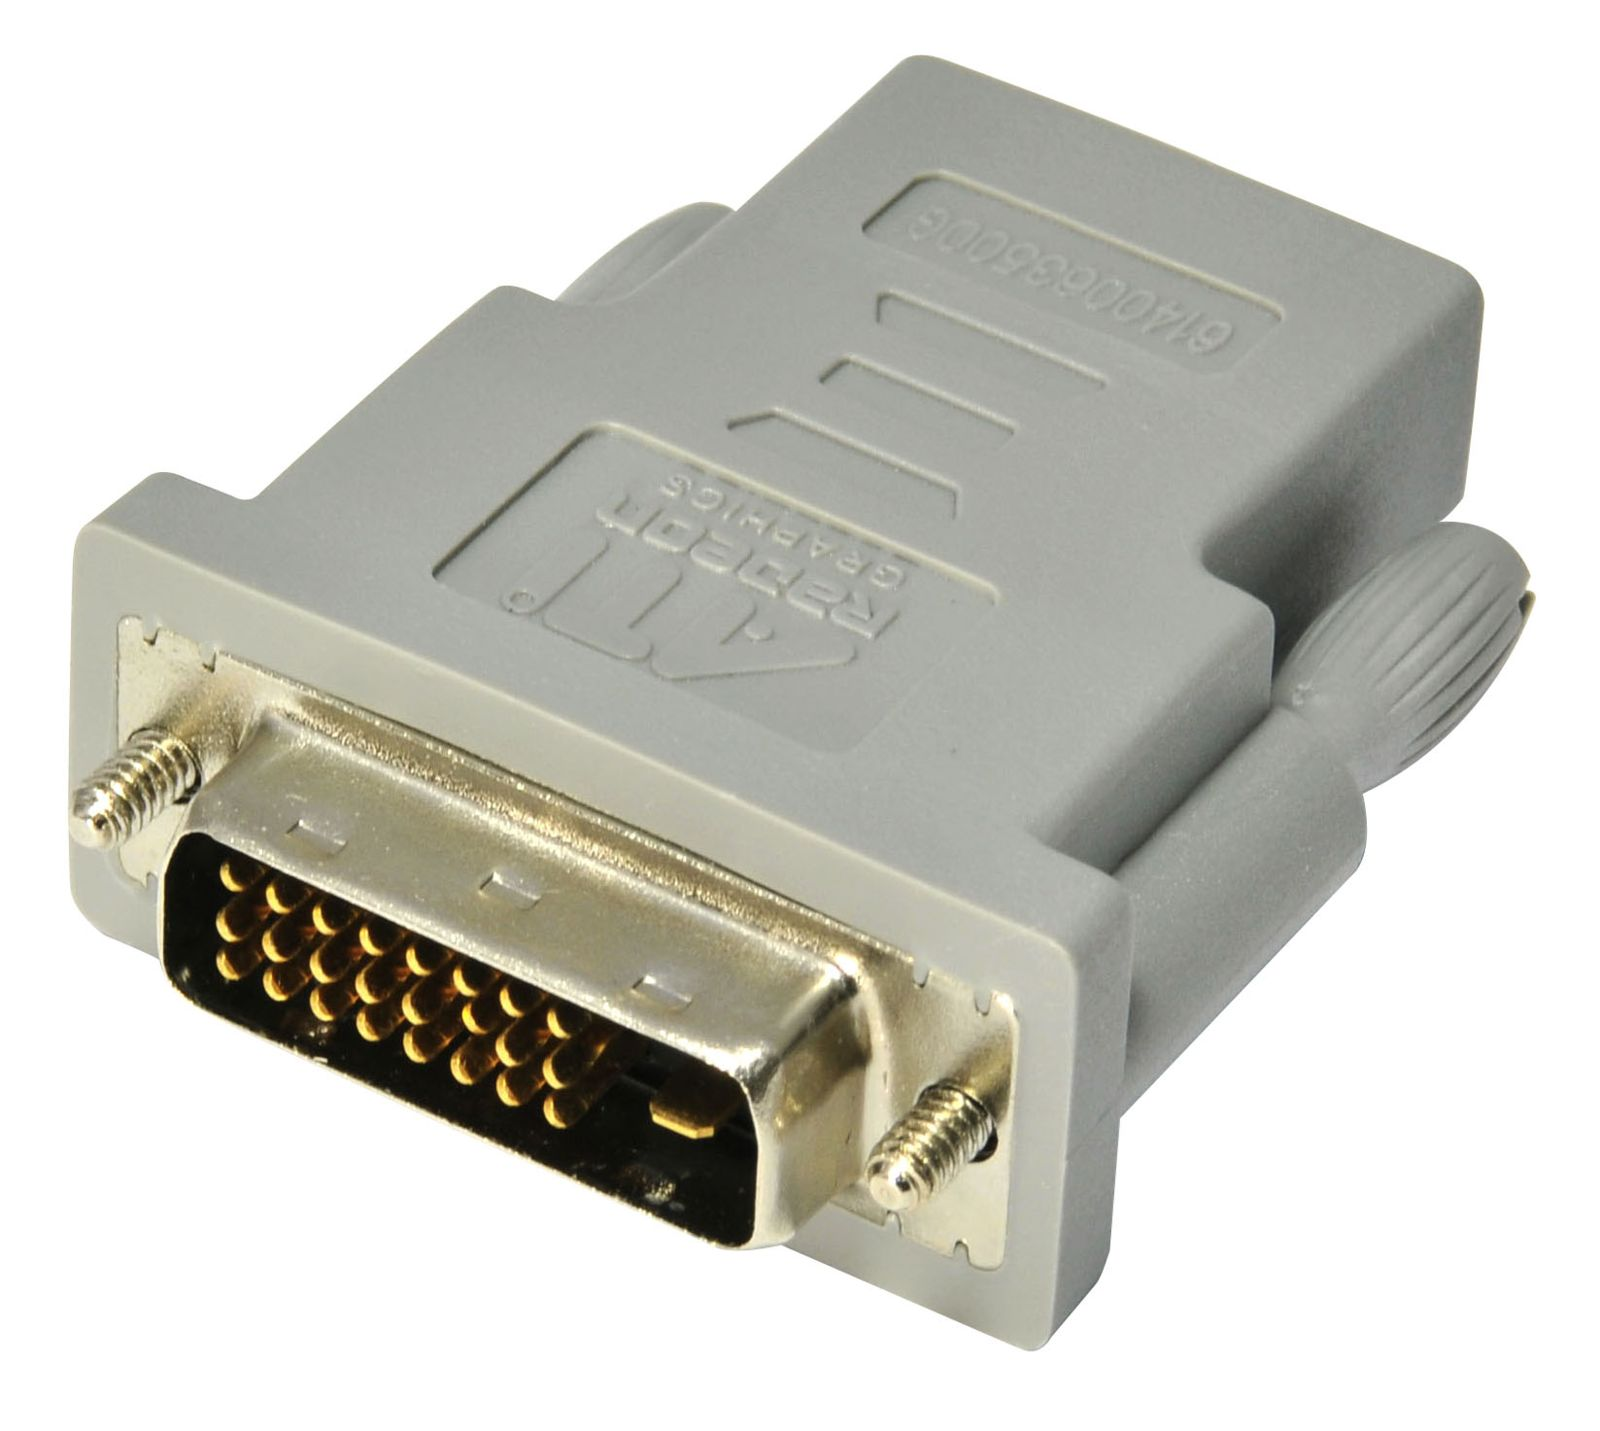 HIS DVI to HDMI Adapter for AMD 7000 / 6000 / 5000 series